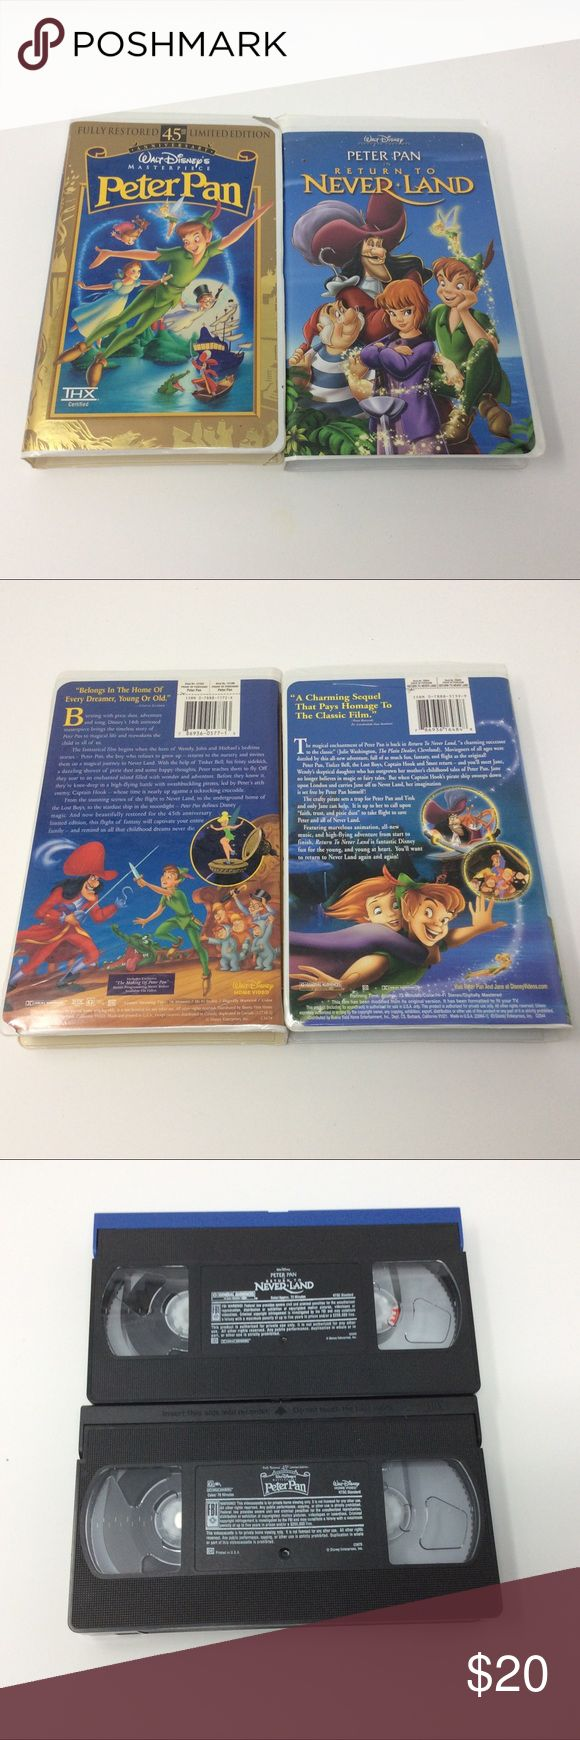 Disney's Peter Pan VHS Set This Disney set includes one masterpiece Peter Pan, and return to Neverland video. Disney Other